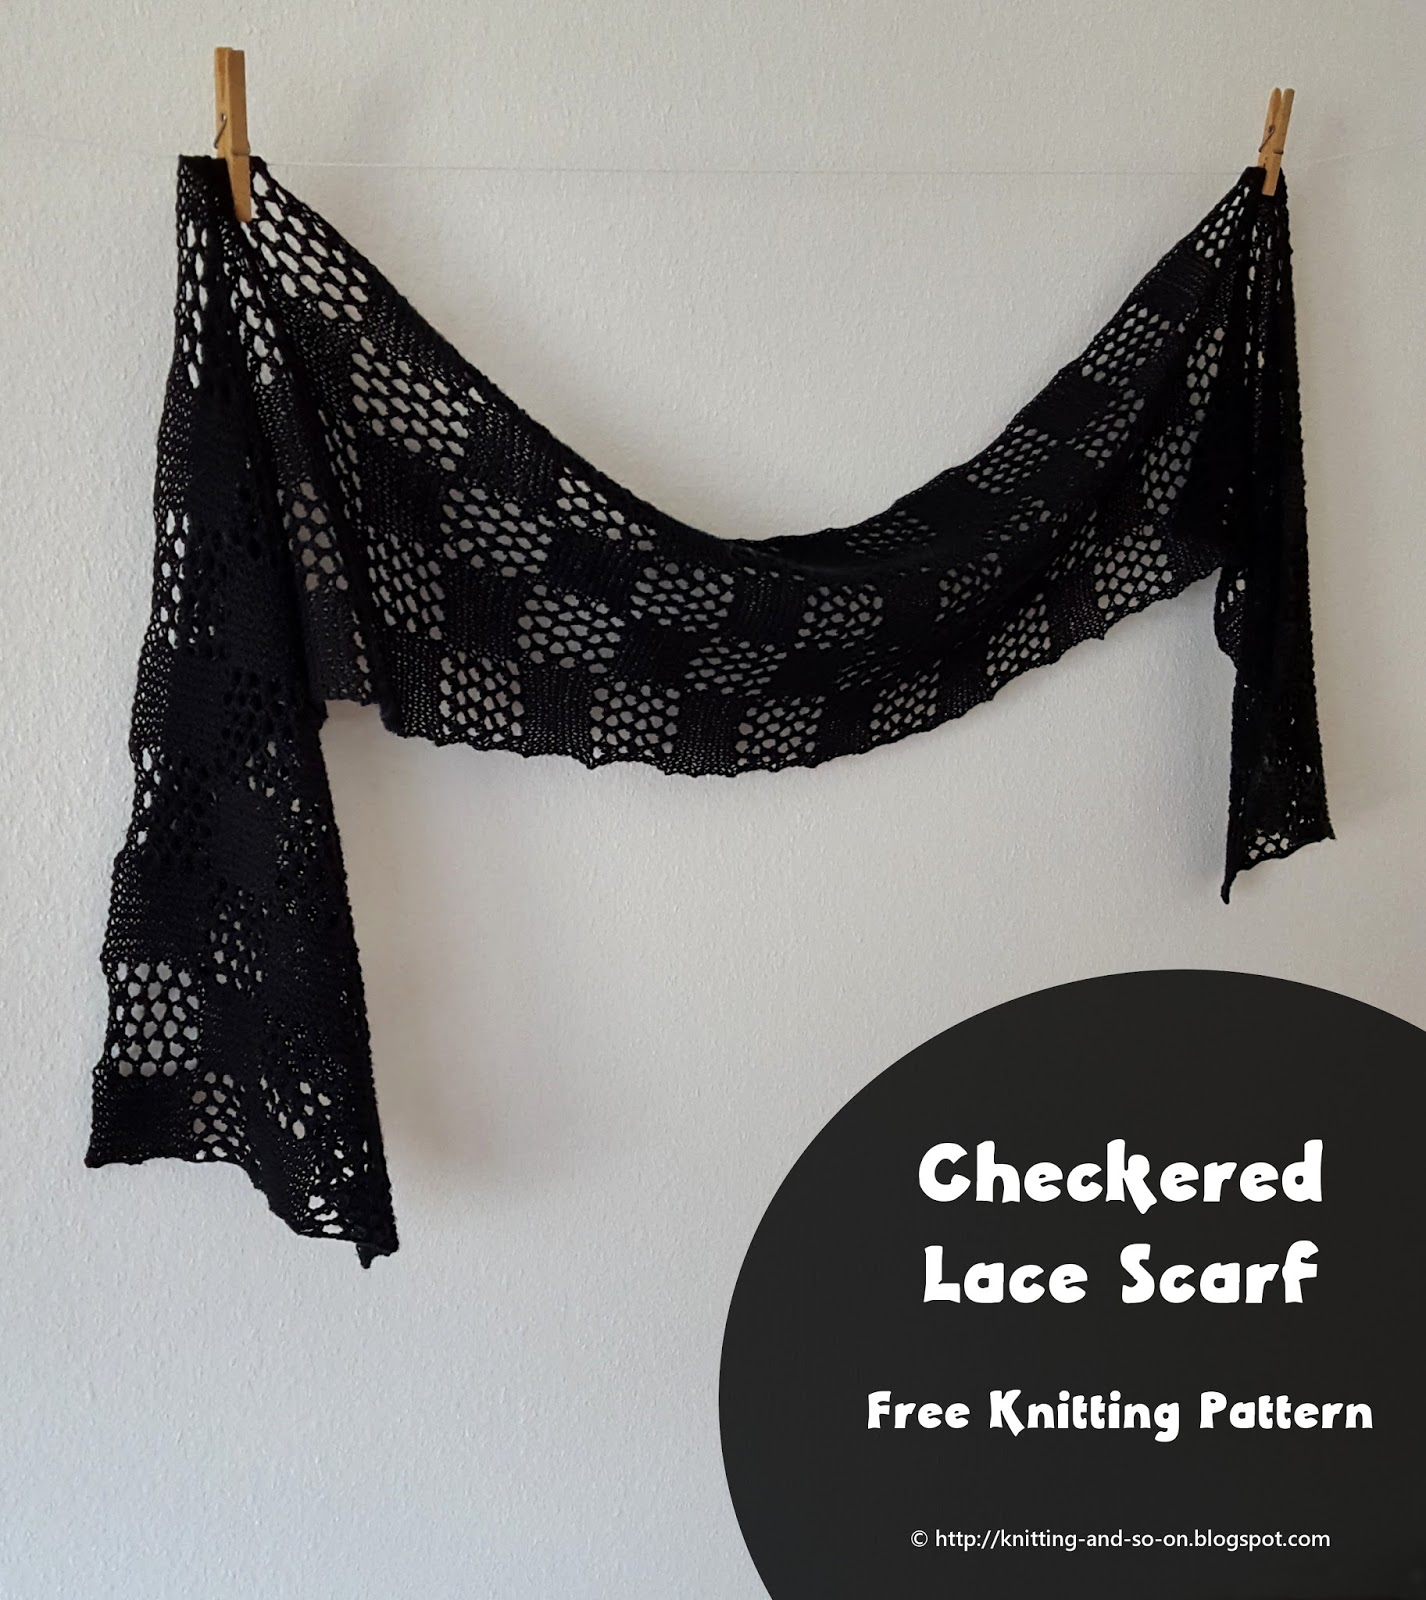 Checkered Knitting Pattern : Knitting and so on: Checkered Lace Scarf